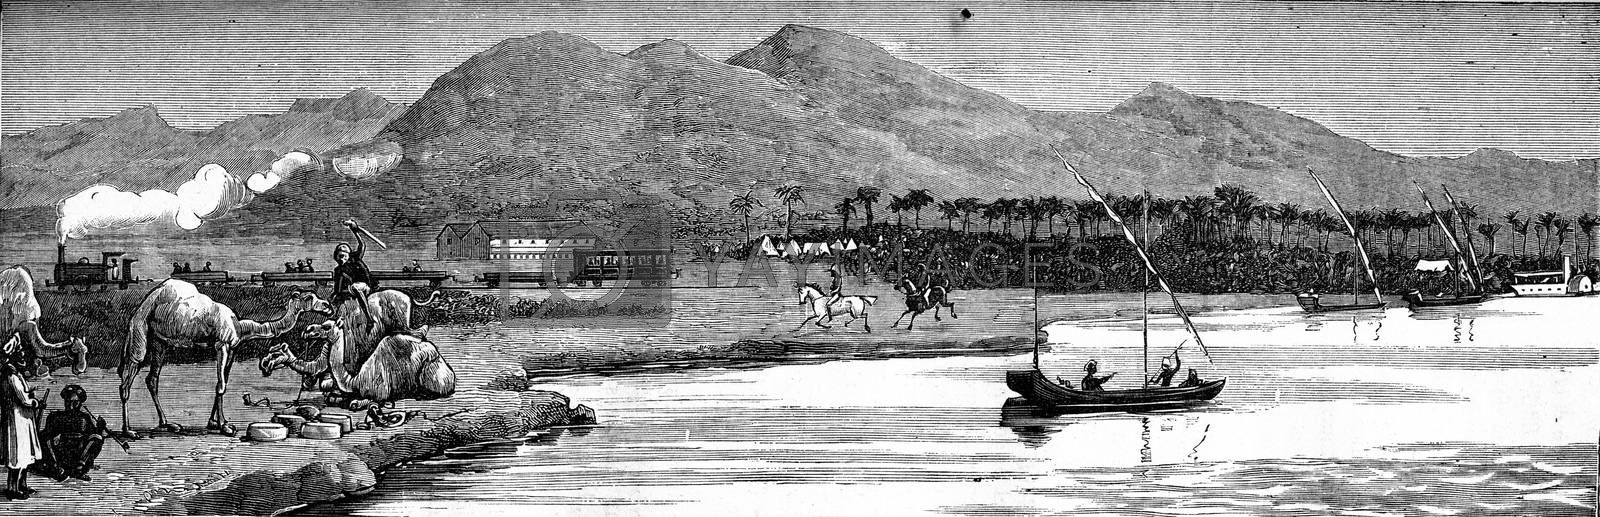 The new English shipping depot in Sudan, with English police patrolling. From Travel Diaries, vintage engraving, 1884-85.